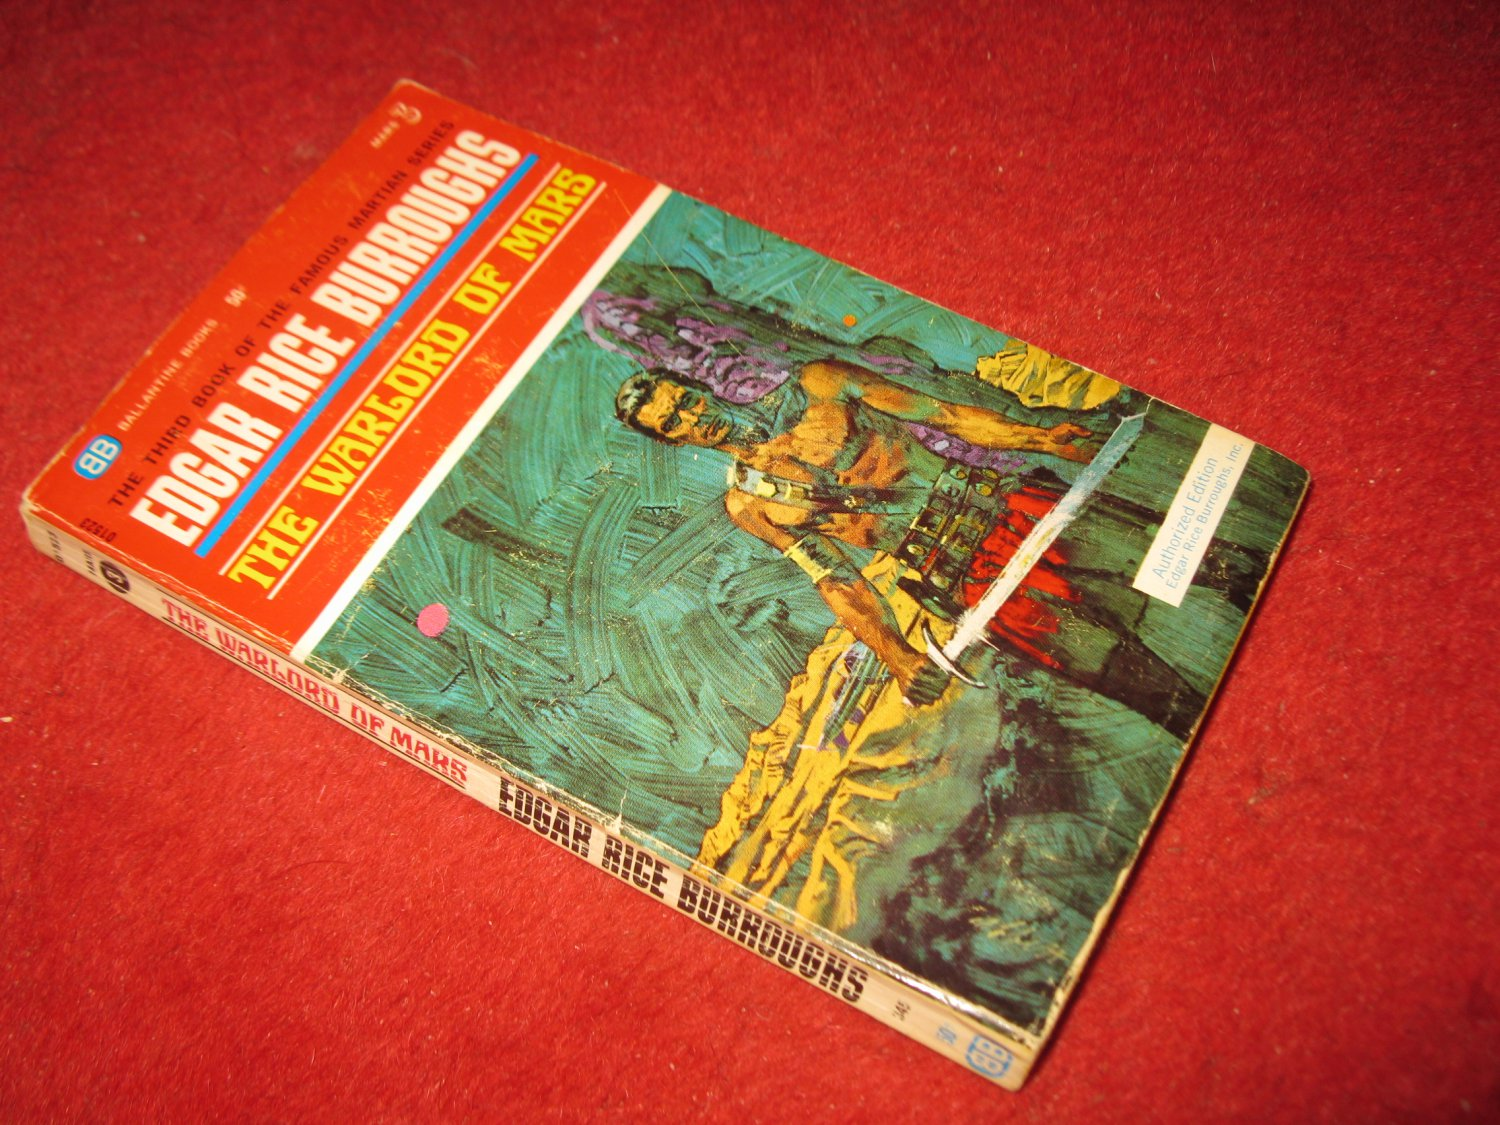 1969 Mars #3: The Warlord of Mars - by Edgar Rice Burroughs - Ballantine books - paperback